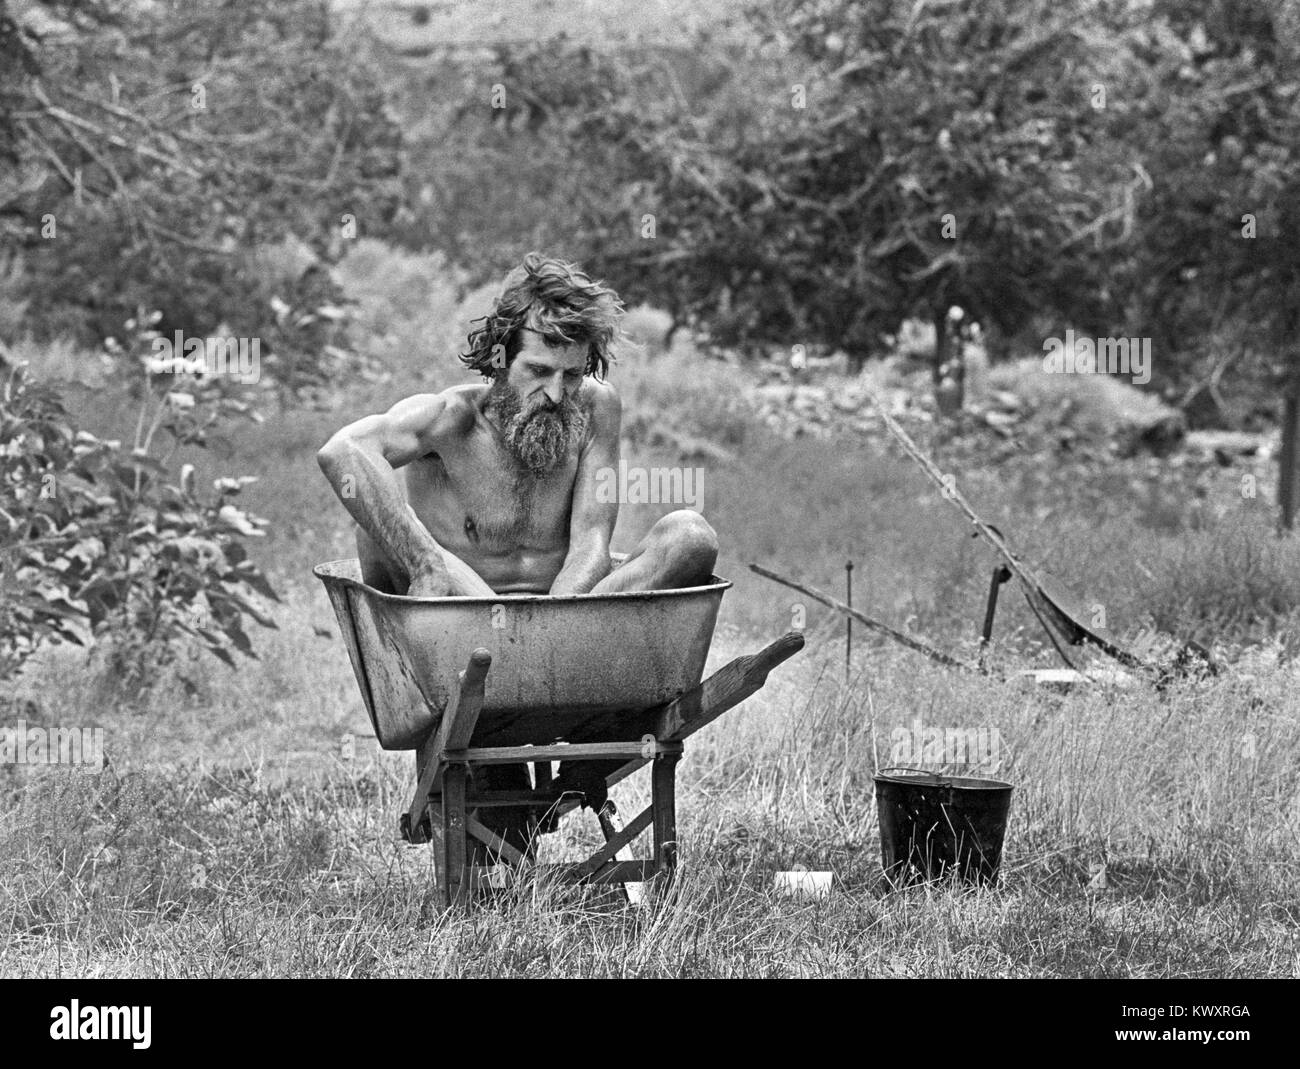 Nik Hougen, an American hermit, bathes in an old wheelbarrow, at his remote residence in Desolation Canyon, Utah, - Stock Image